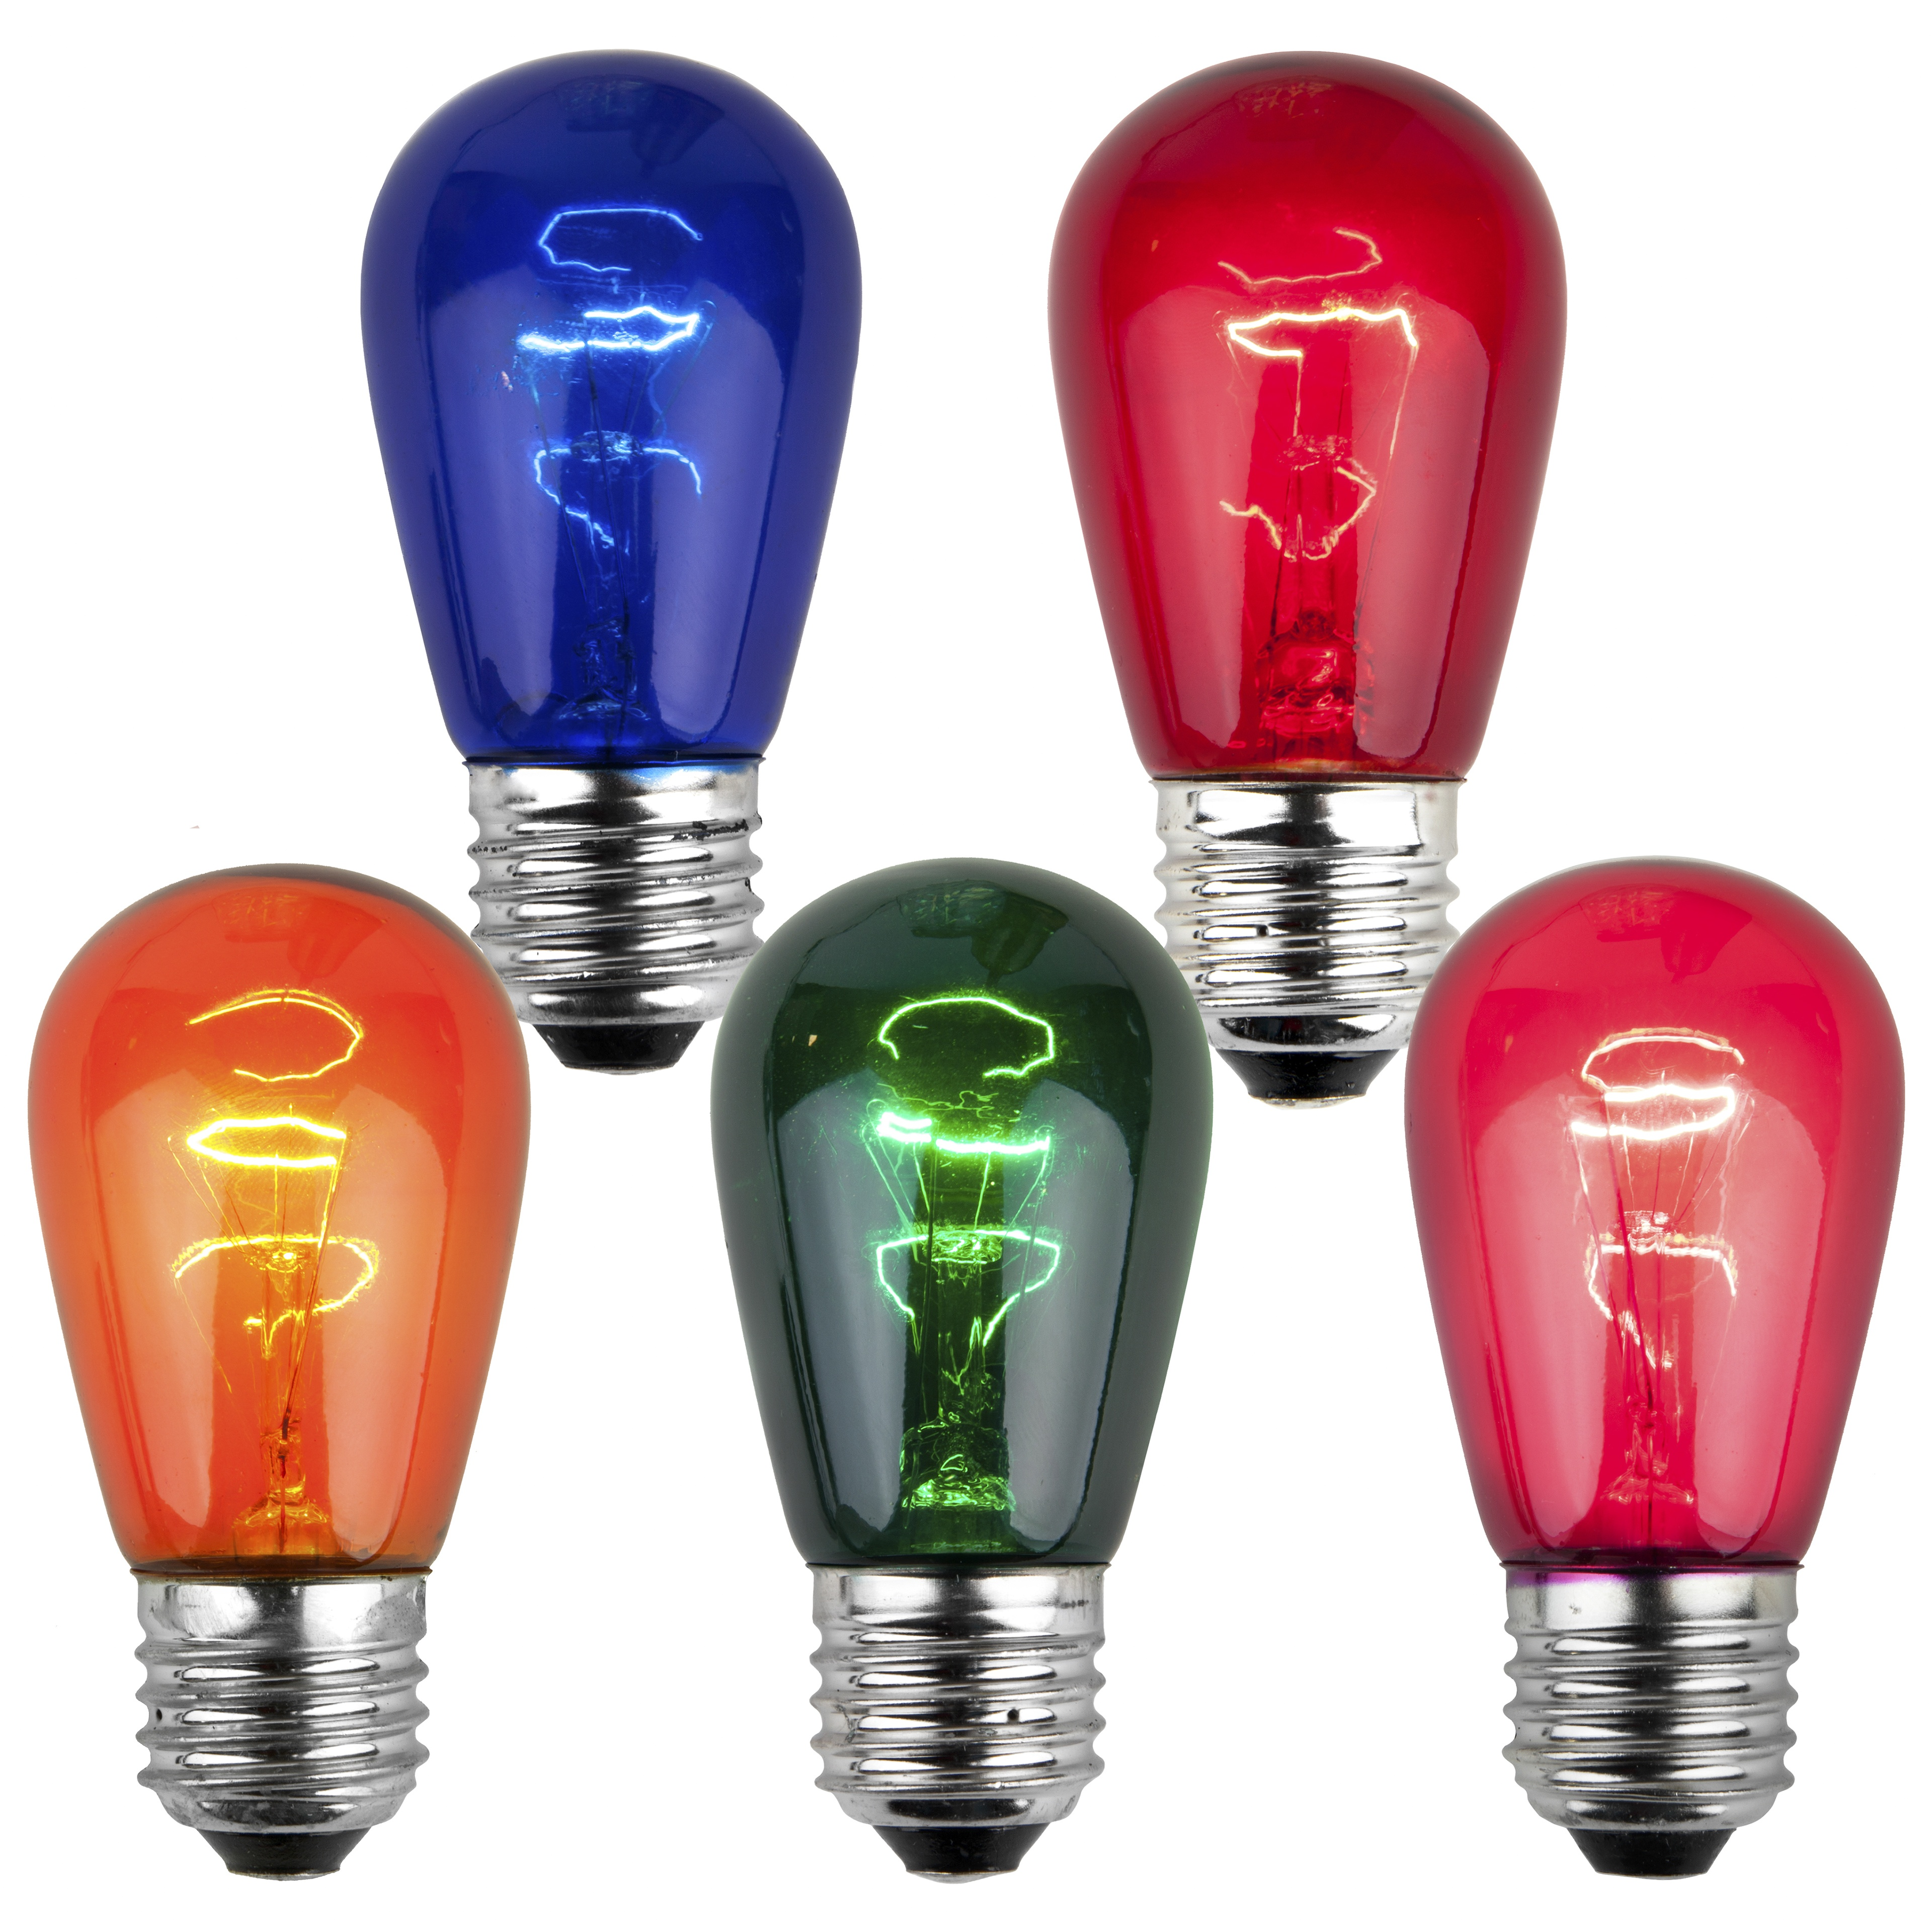 S14 Colored Party Bulbs Multicolor Yard Envy